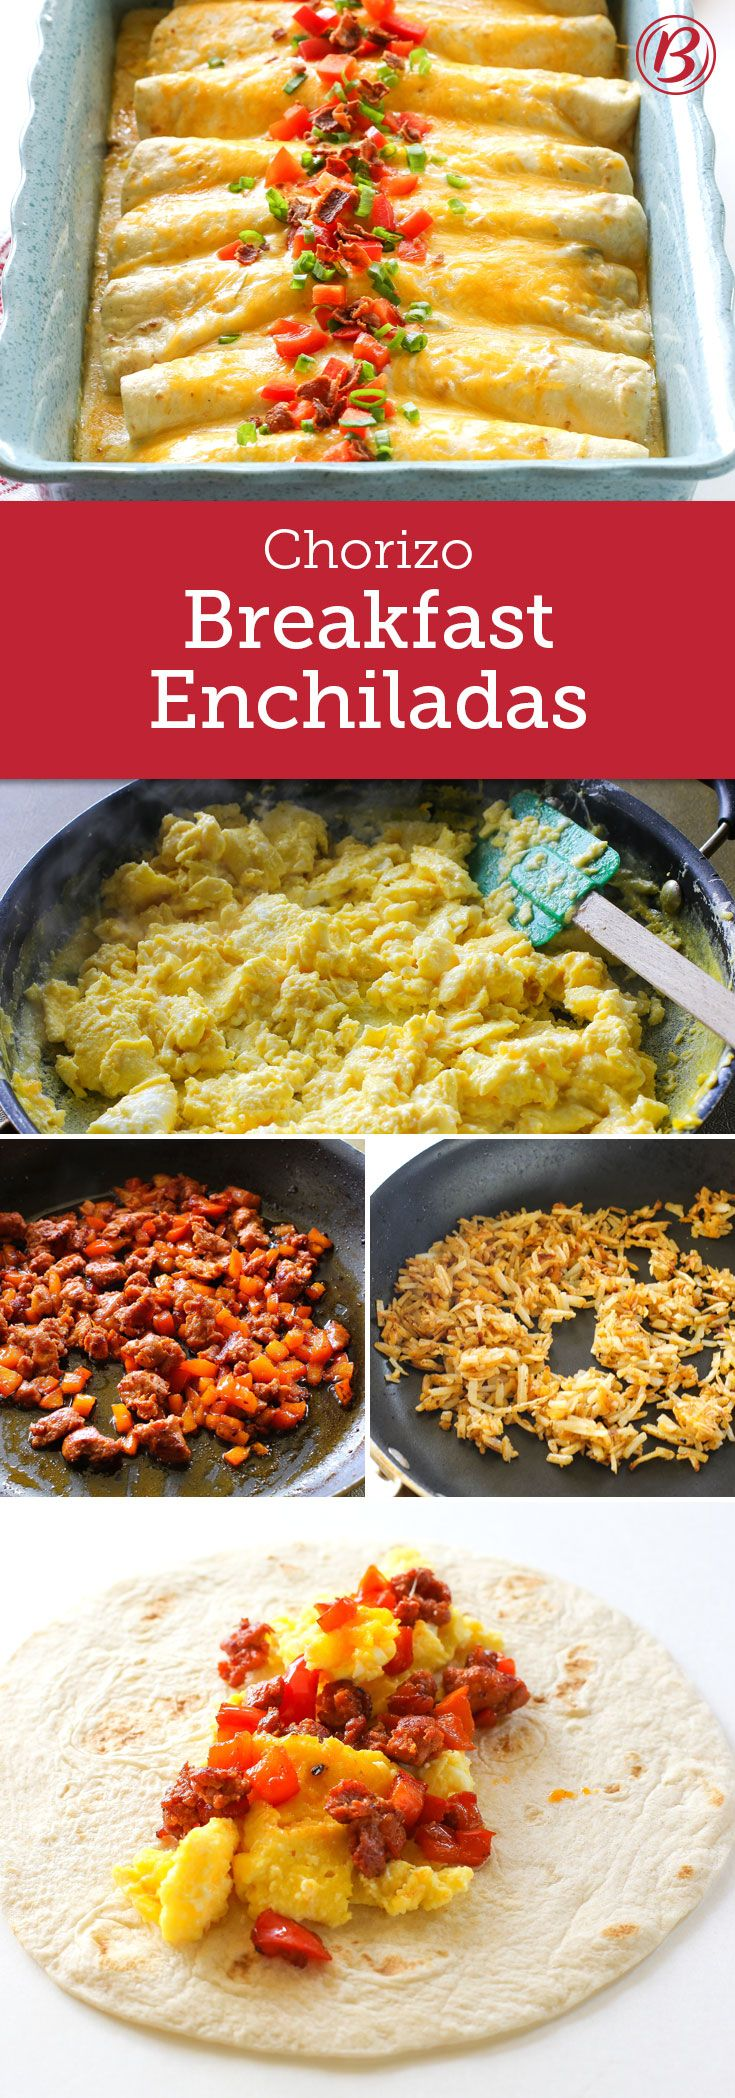 Calling all savory breakfast lovers! You'll soon be making these unforgettable Chorizo Breakfast Enchiladas over and over. Loaded with eggs, chorizo, red peppers, crispy hash browns, bacon and cheese – then smothered in Old El Paso green enchilada sauce, these breakfast enchiladas are as easy and flavorful (and pure genius) as can be.